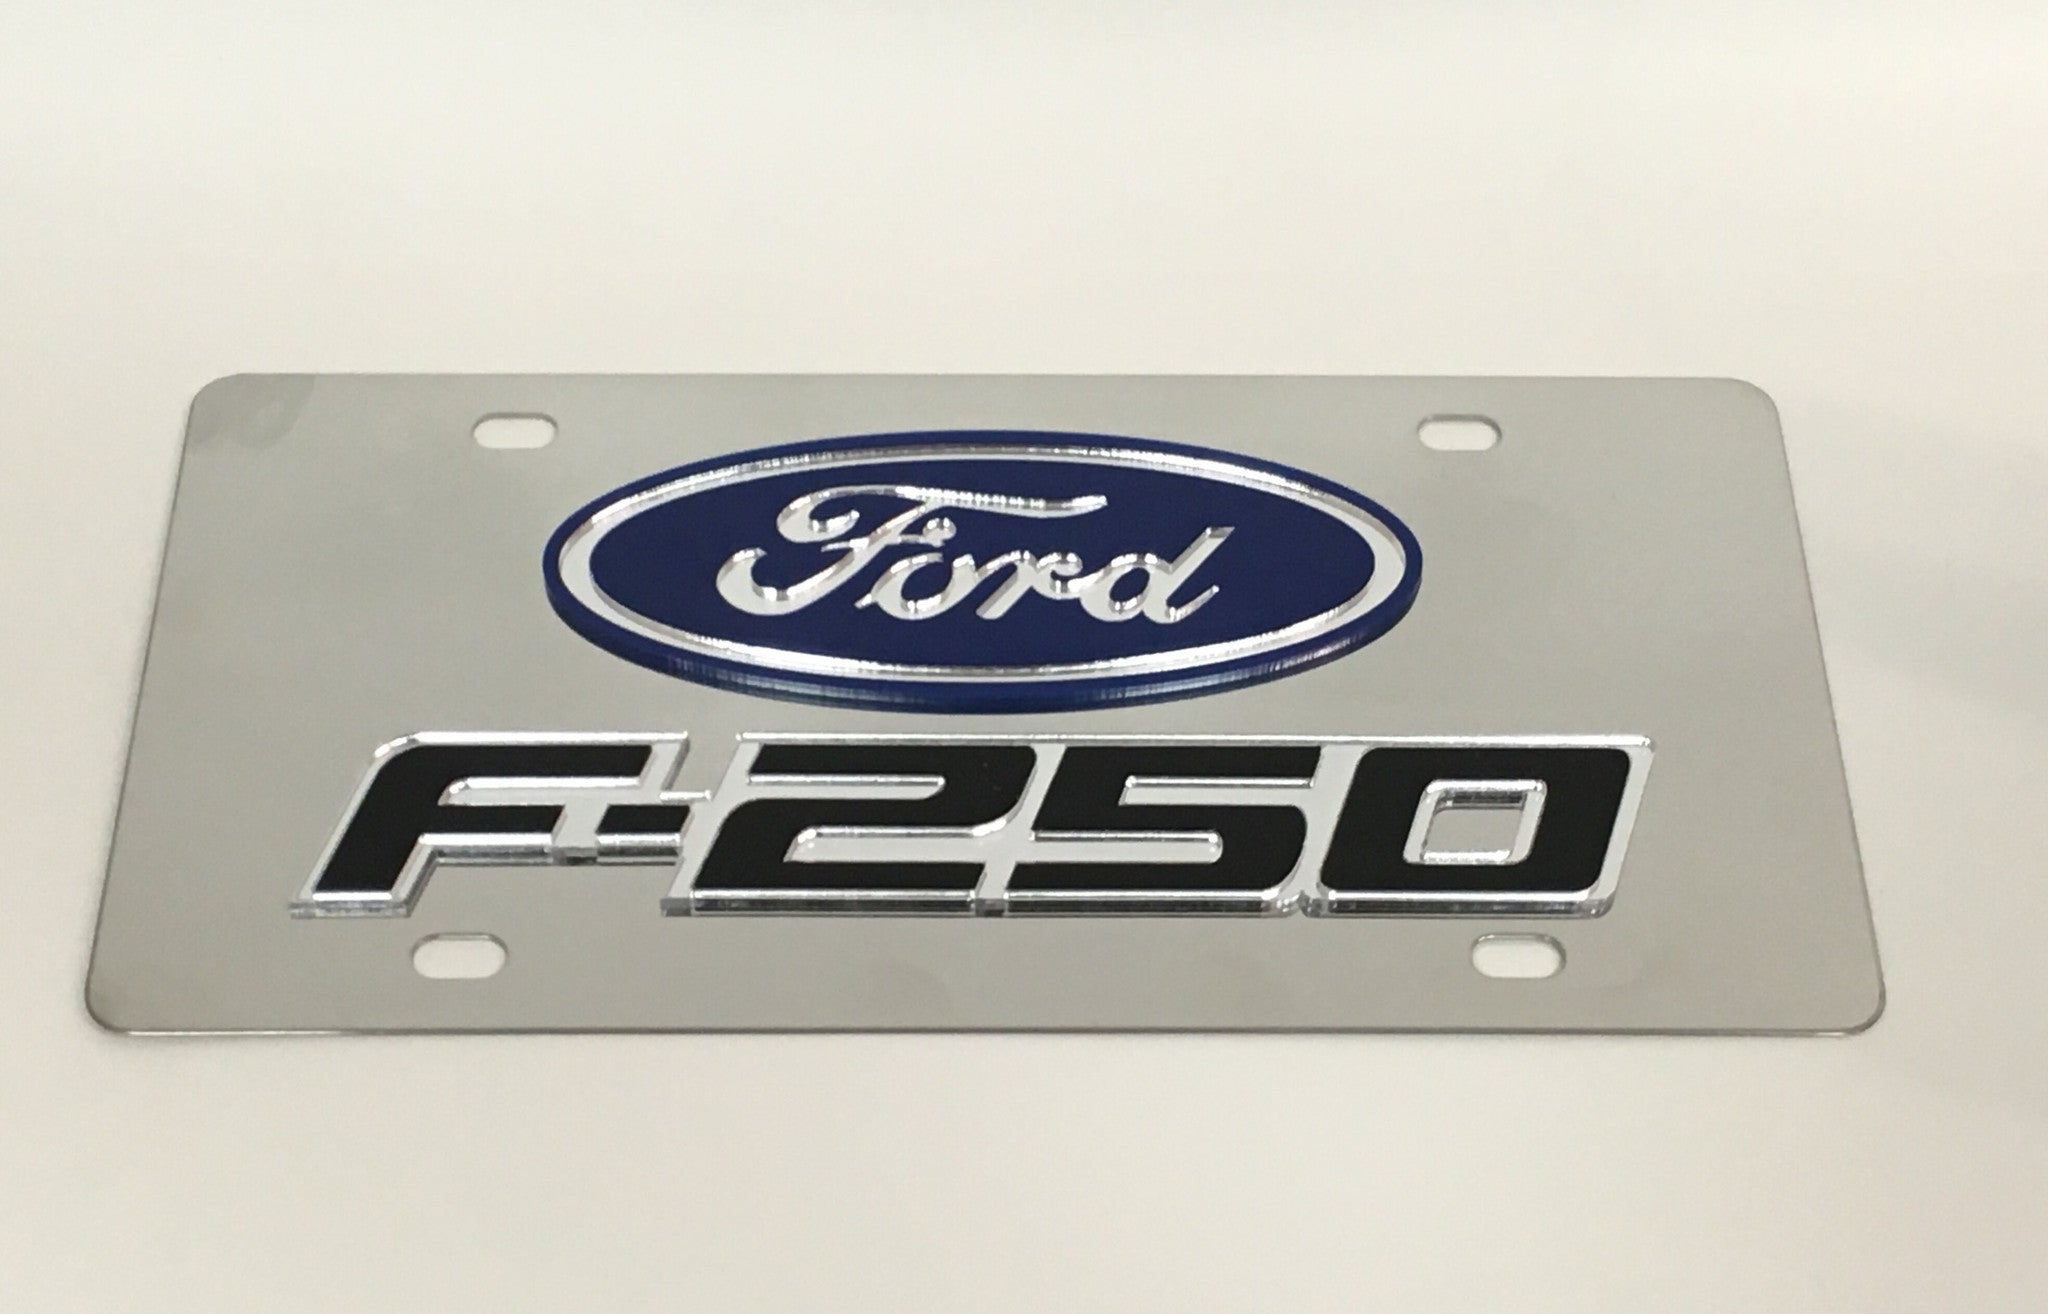 Ford F-250 Stainless Steel License Plate